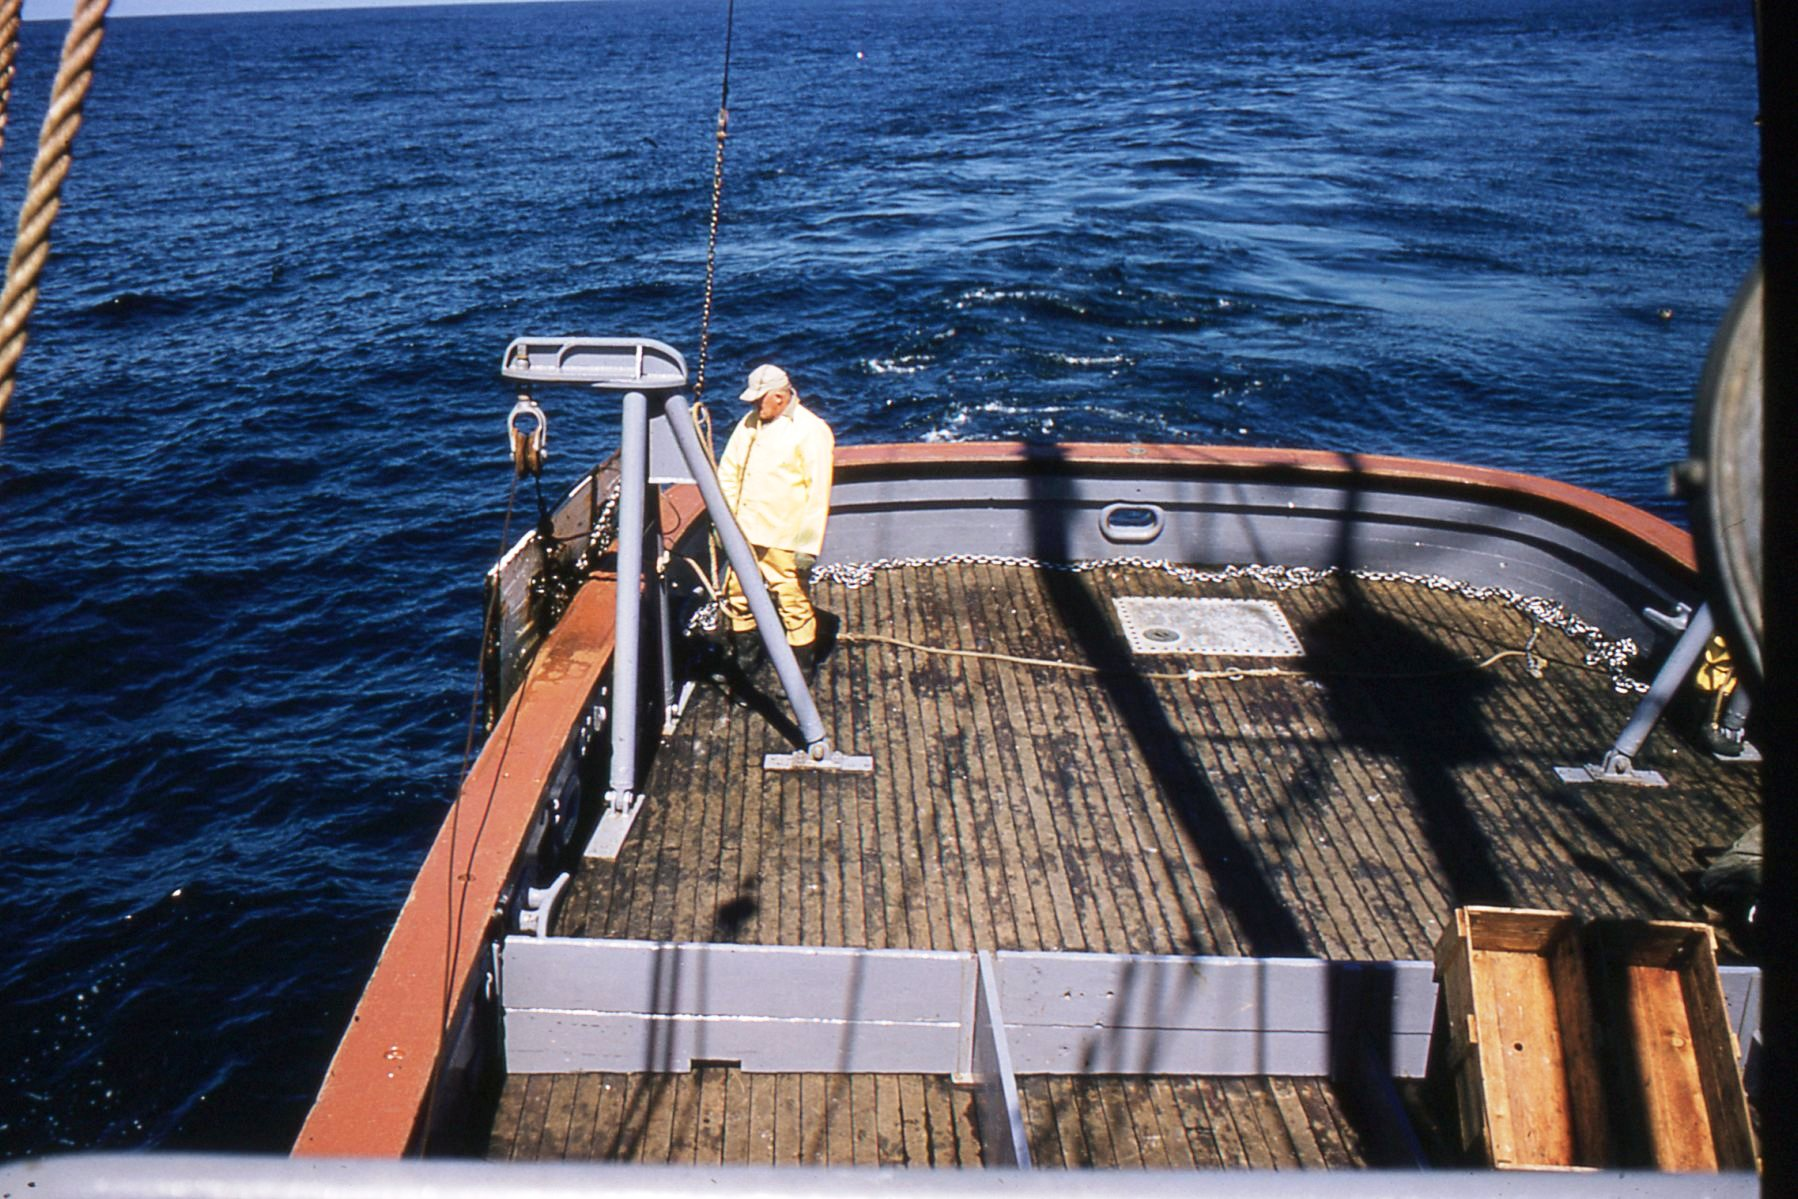 Trawl door is chained to the stanchion Hitz photo & RETRIEVING THE TRAWL \u2013 My First Cobb Trip | Carmel Finley